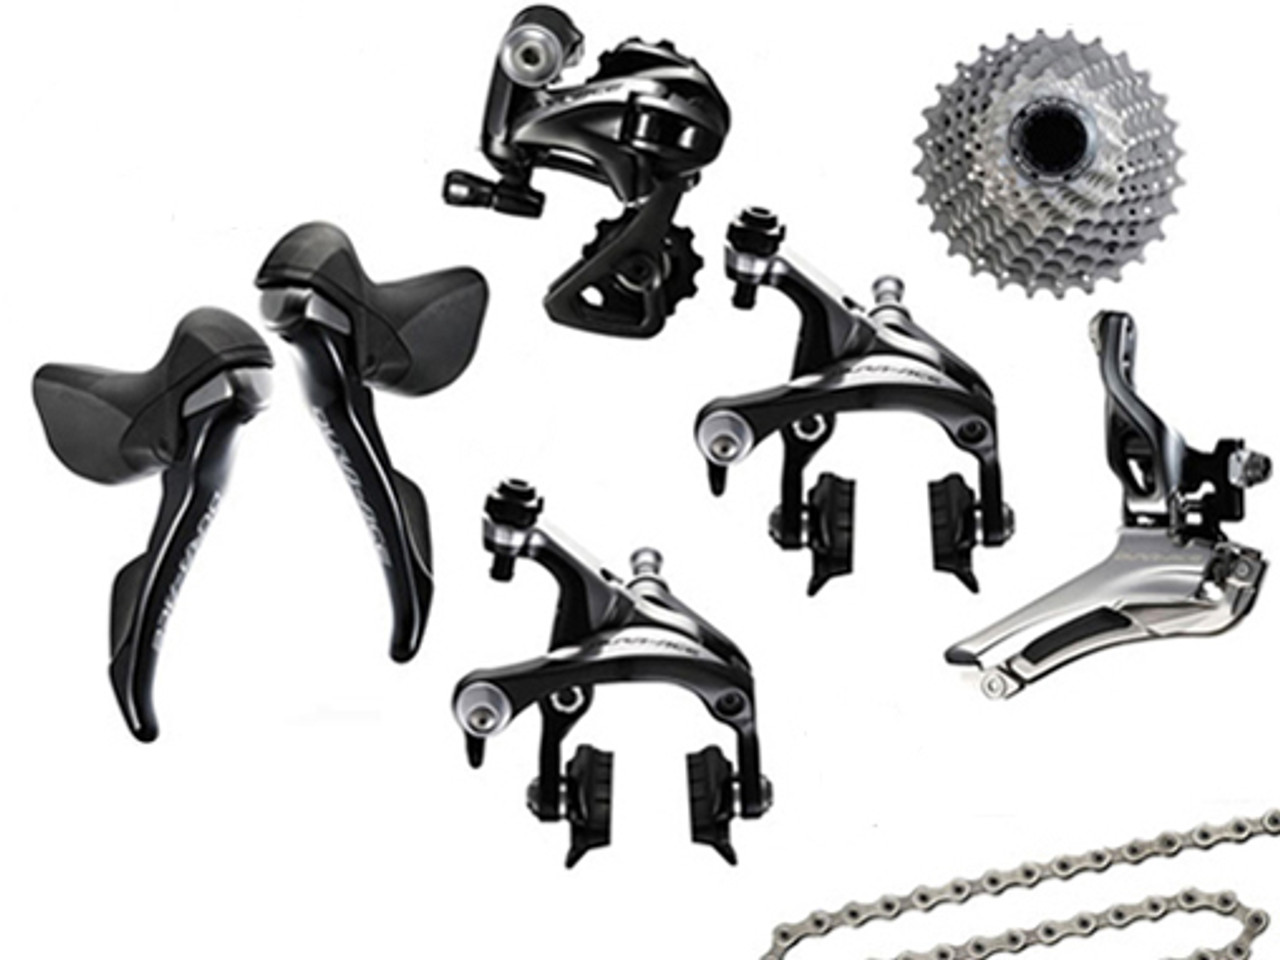 Texas Cyclesport Shimano Dura-Ace 9000 STI 6 piece Upgrade